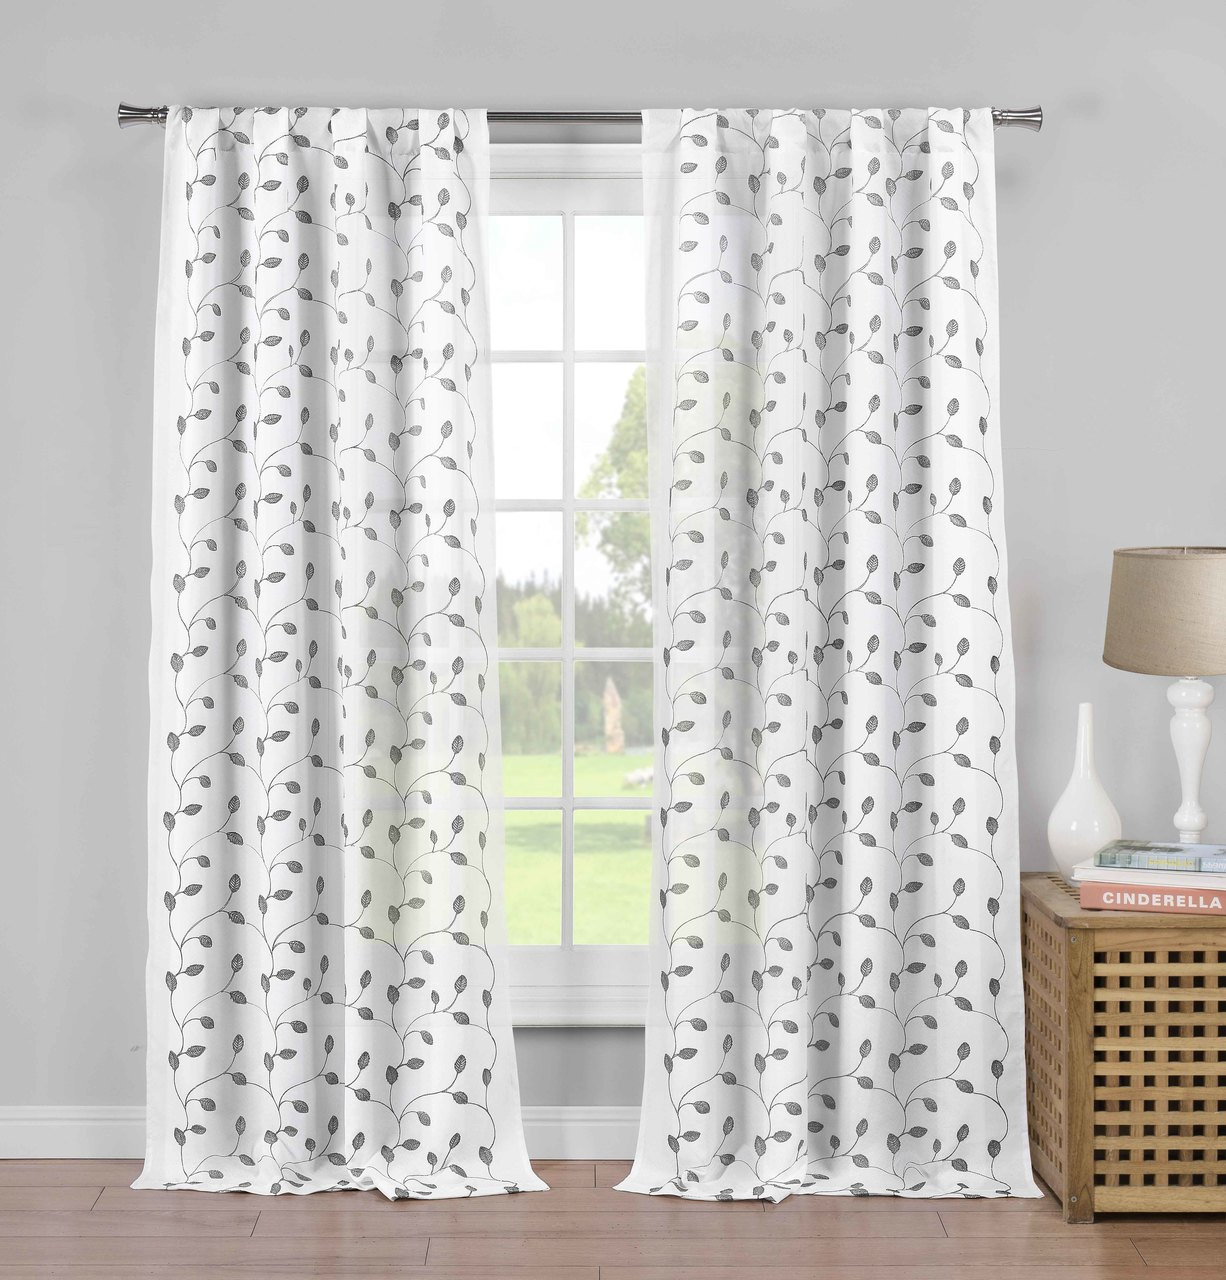 set of two 2 pure white semi sheer rod pocket window curtain panels gray metallic leaf and branch design 84 long